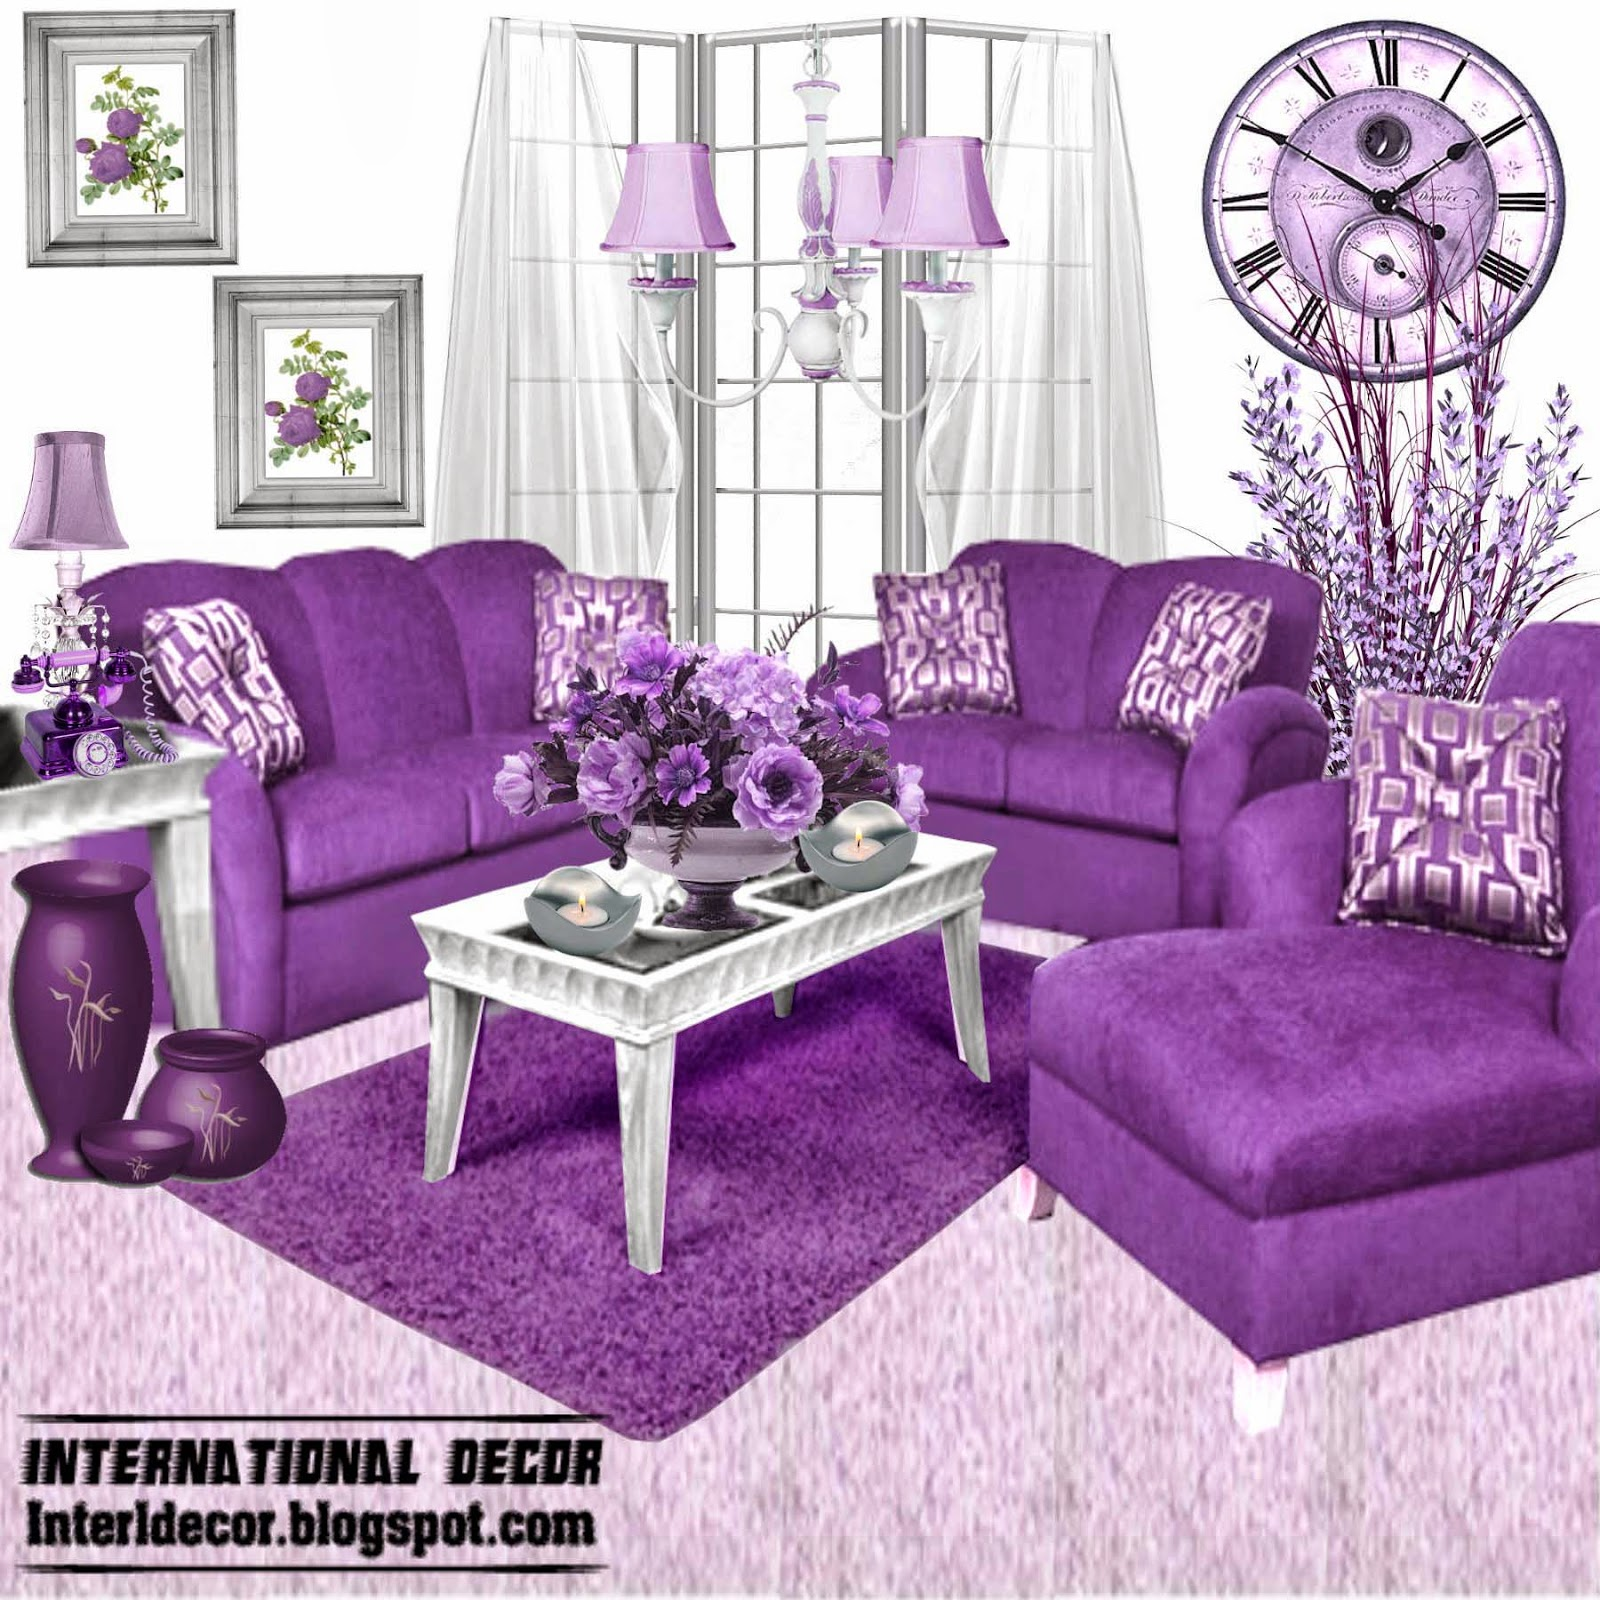 Luxury purple furniture sets sofas chairs for living for The living room sofas